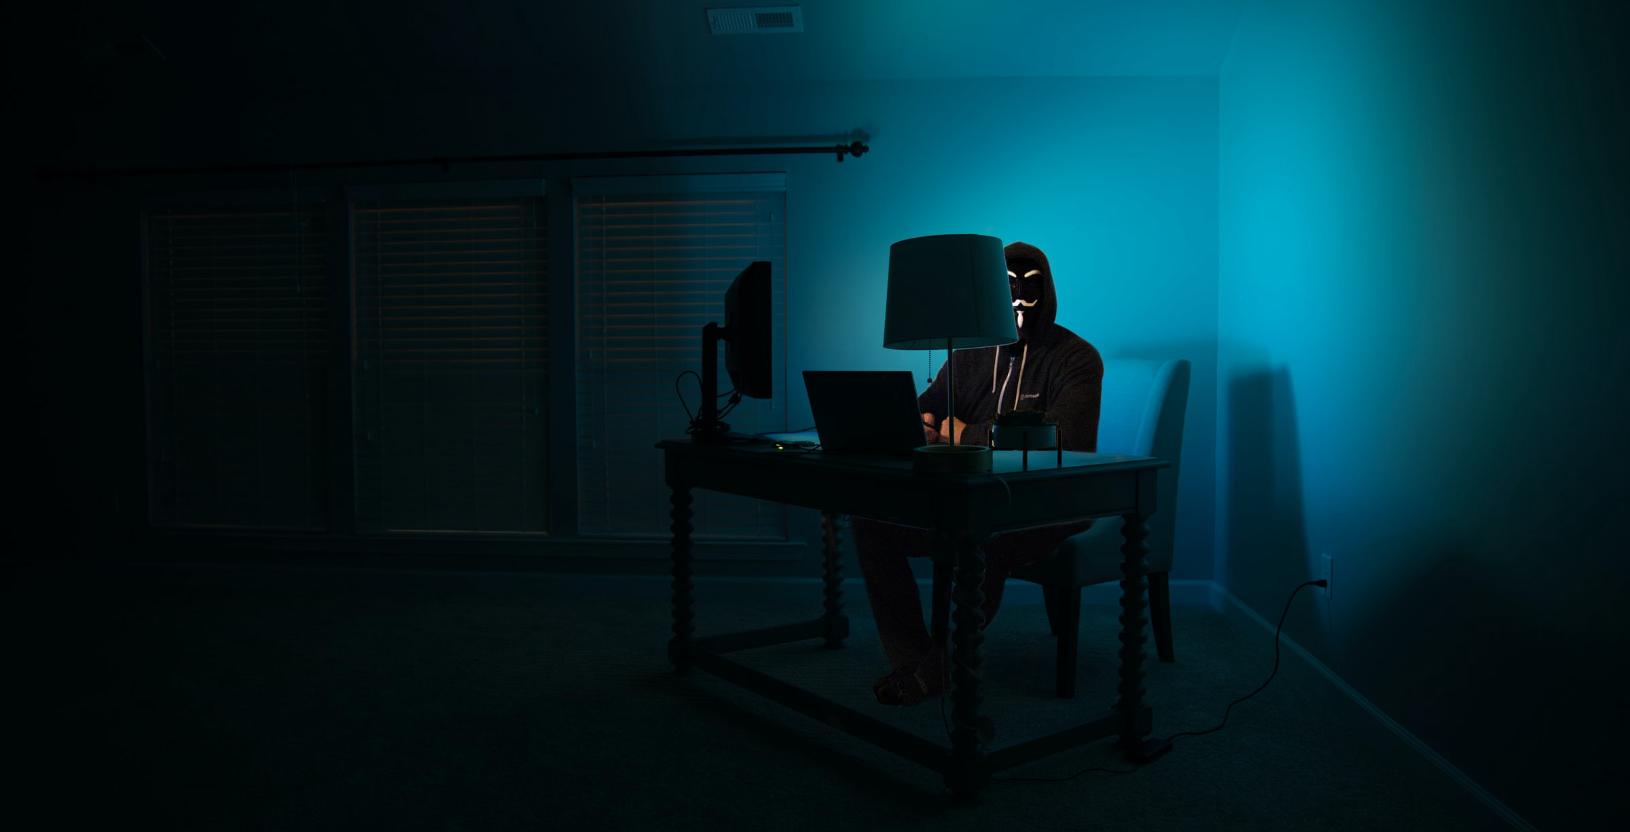 A hacker sitting at a desk in a dark room, facing a laptop